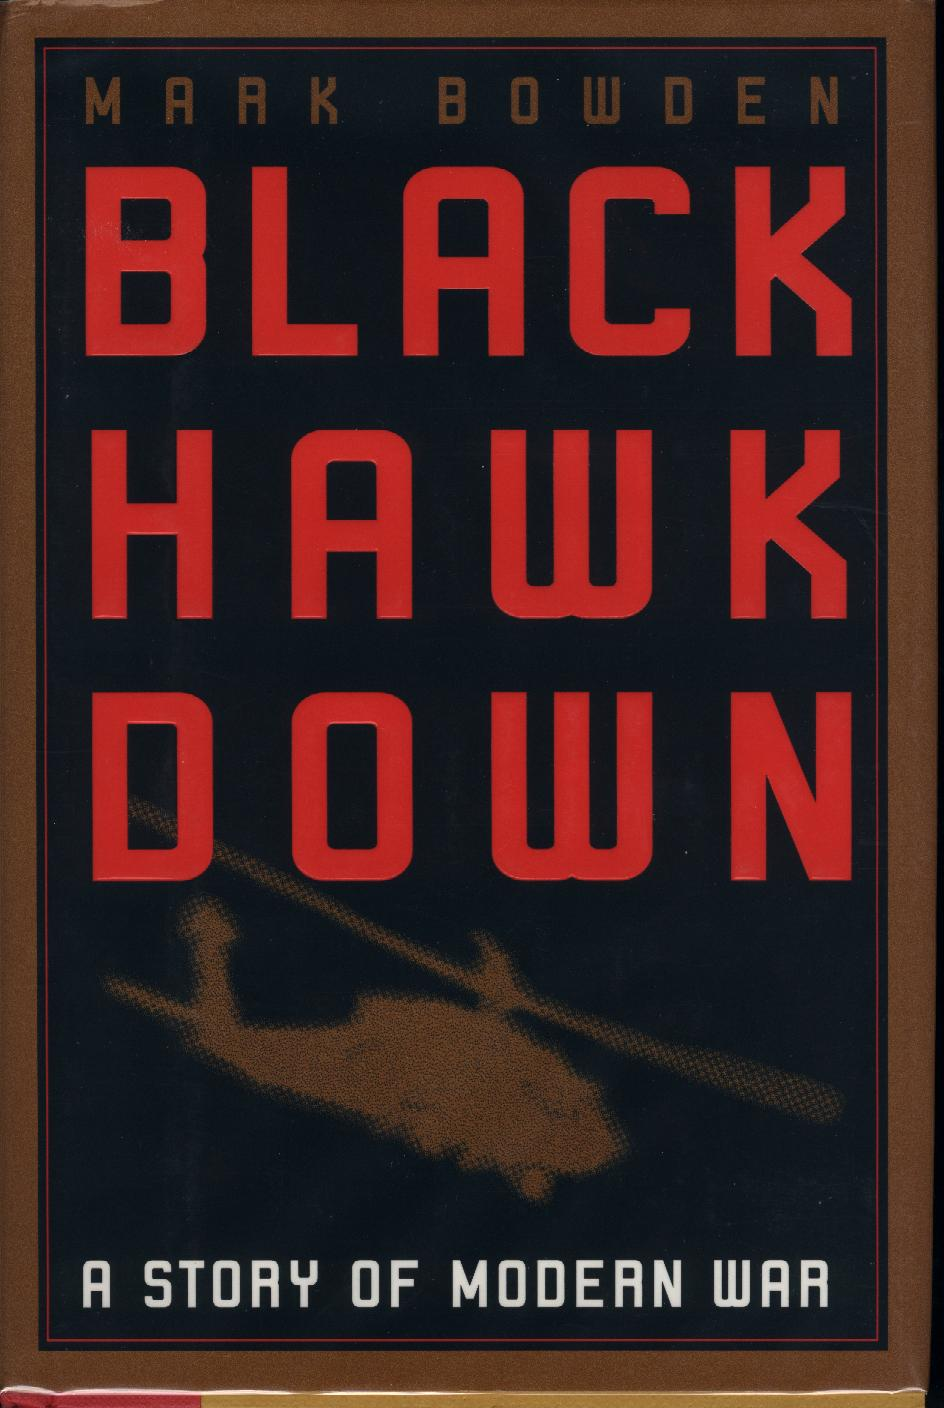 black hawk down book essay The novel begins on a train trip in which the narrator and a childhood friend, jim burden, share words about the past their conversation is a reminiscence about their small hometown of black hawk, nebraska, and a bohemian girl they both remember named Ántonia shimerda.